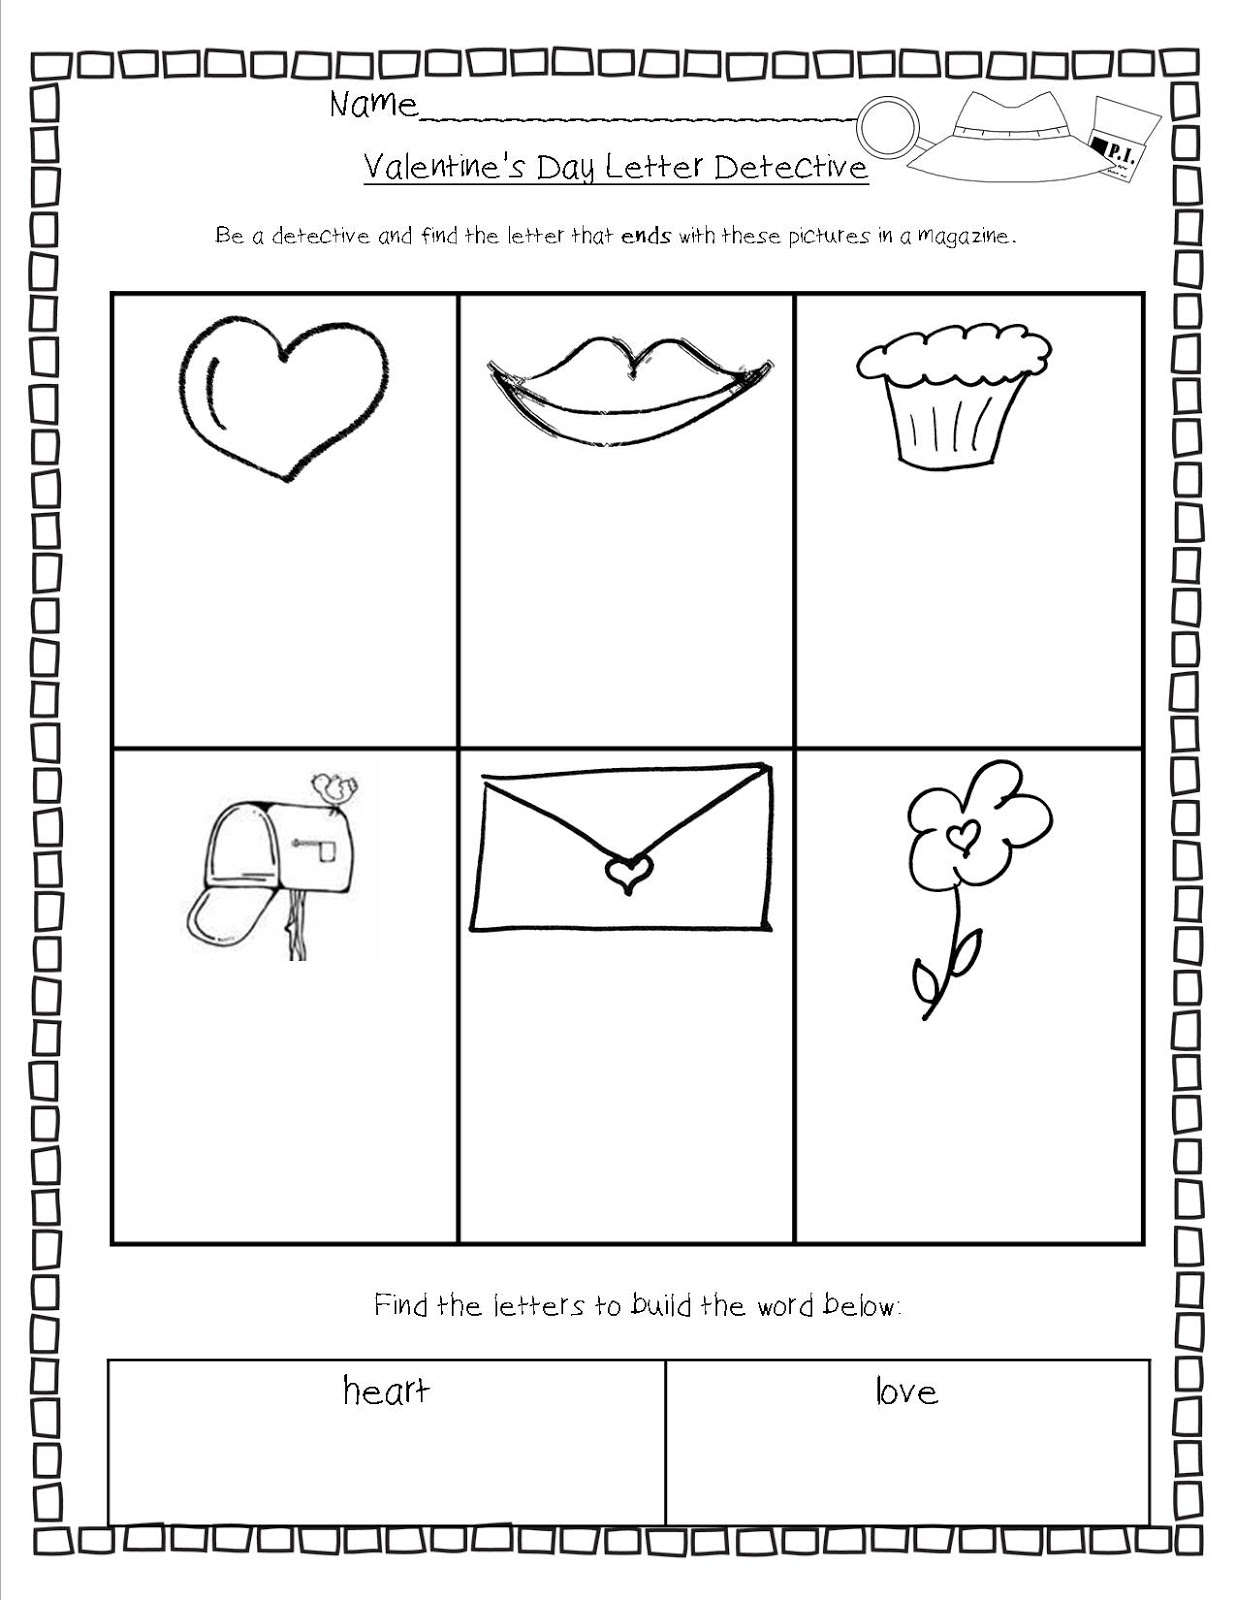 find a letter letter detective by robinson tpt mrs bohaty s kindergarten kingdom february 2013 335